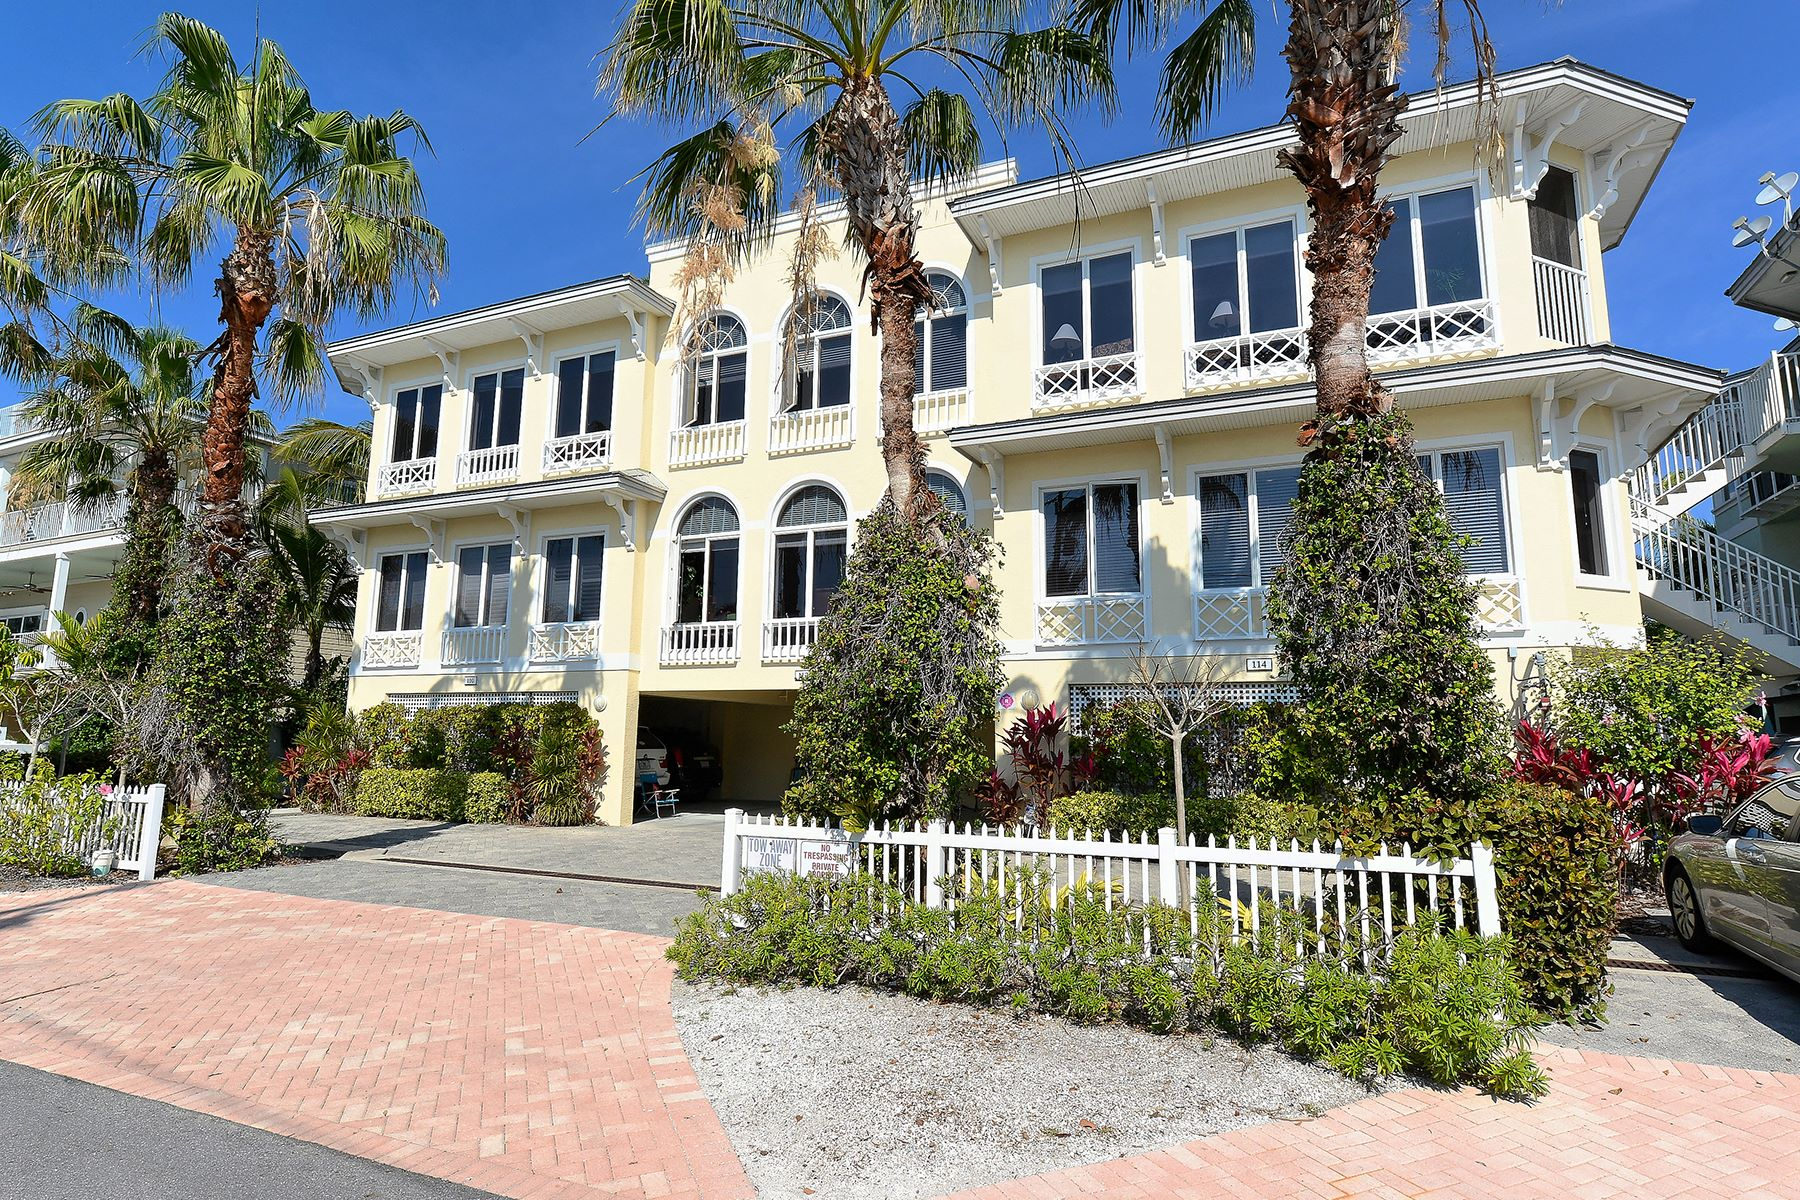 Casa unifamiliar adosada (Townhouse) por un Venta en OLD BRIDGE VILLAGE 114 4th St S Bradenton Beach, Florida, 34217 Estados Unidos